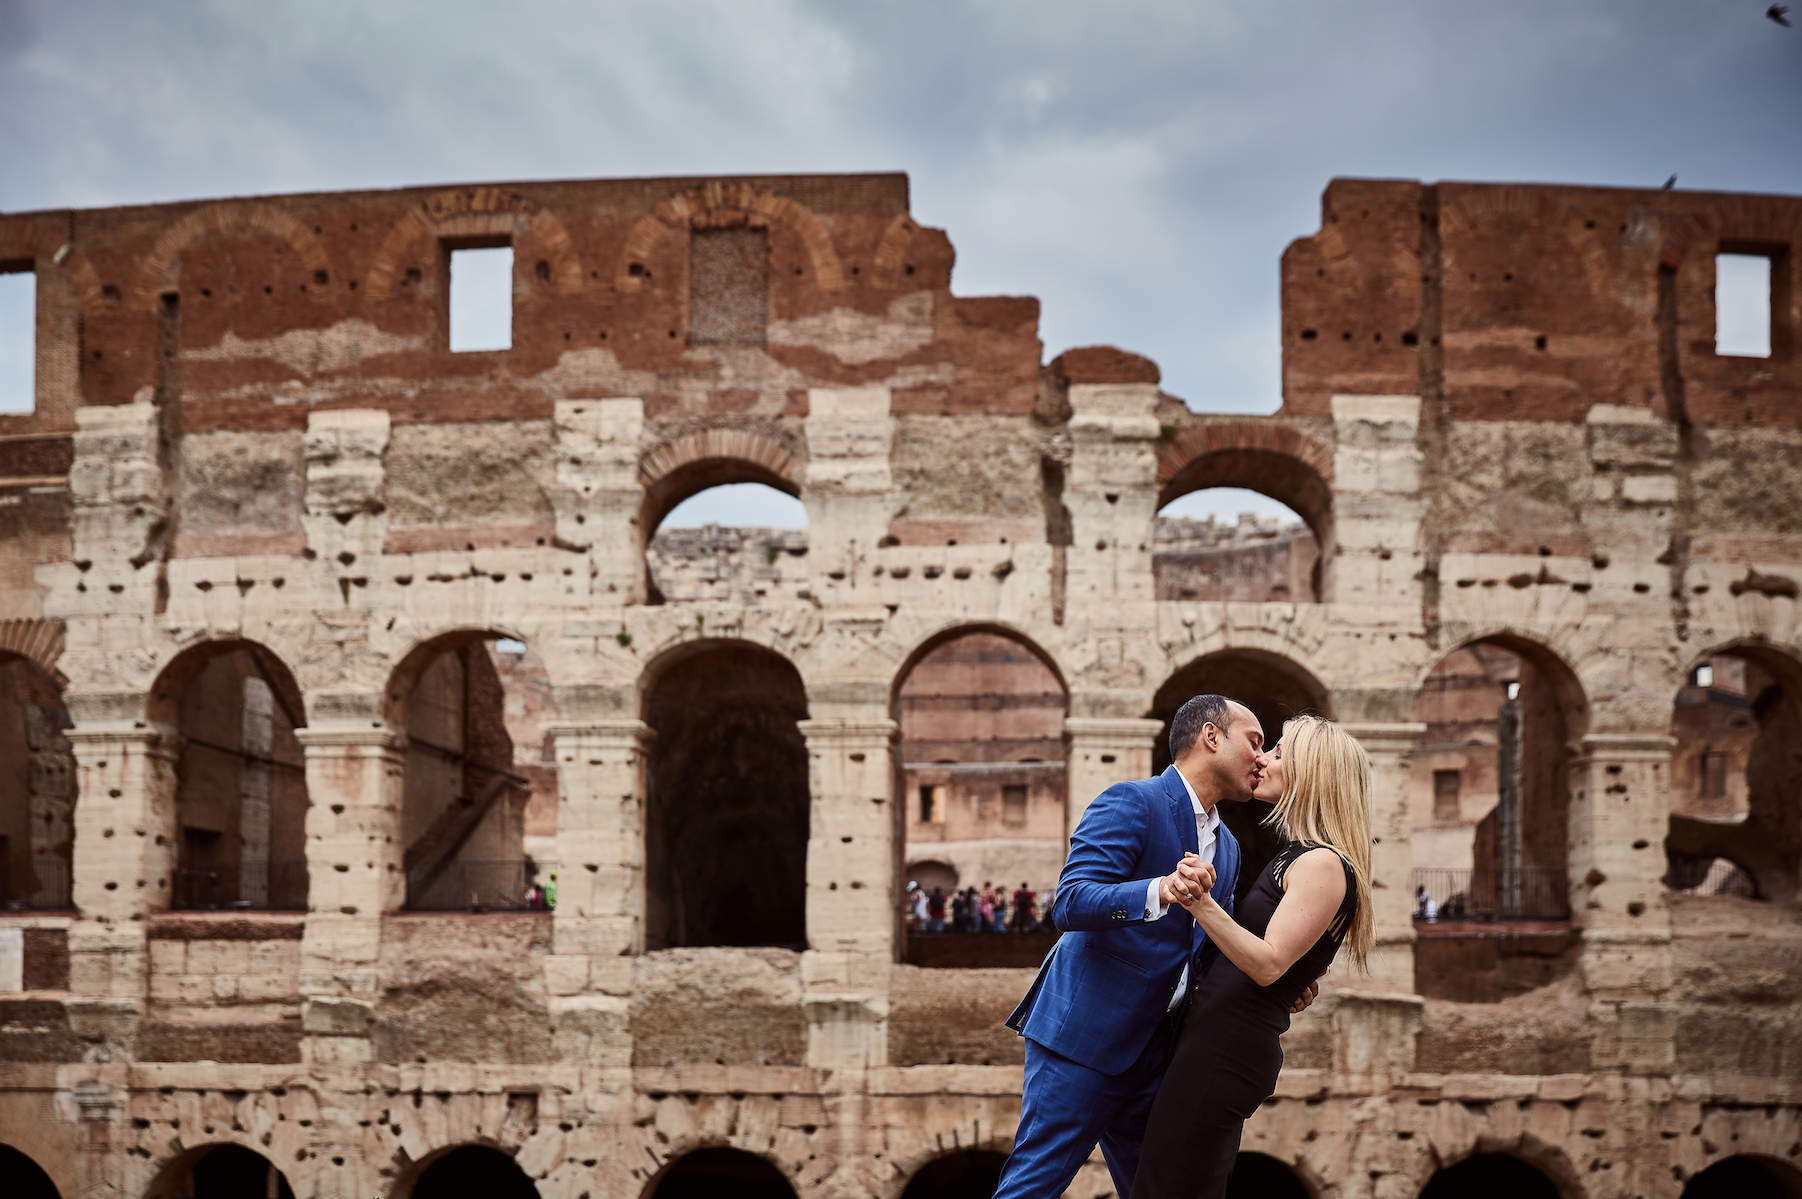 Engagement photos in Tuscany. Destination wedding planner Andrea Eppolito. Engagement photos in Italy.  Italian Imagery by  D2 Photography .